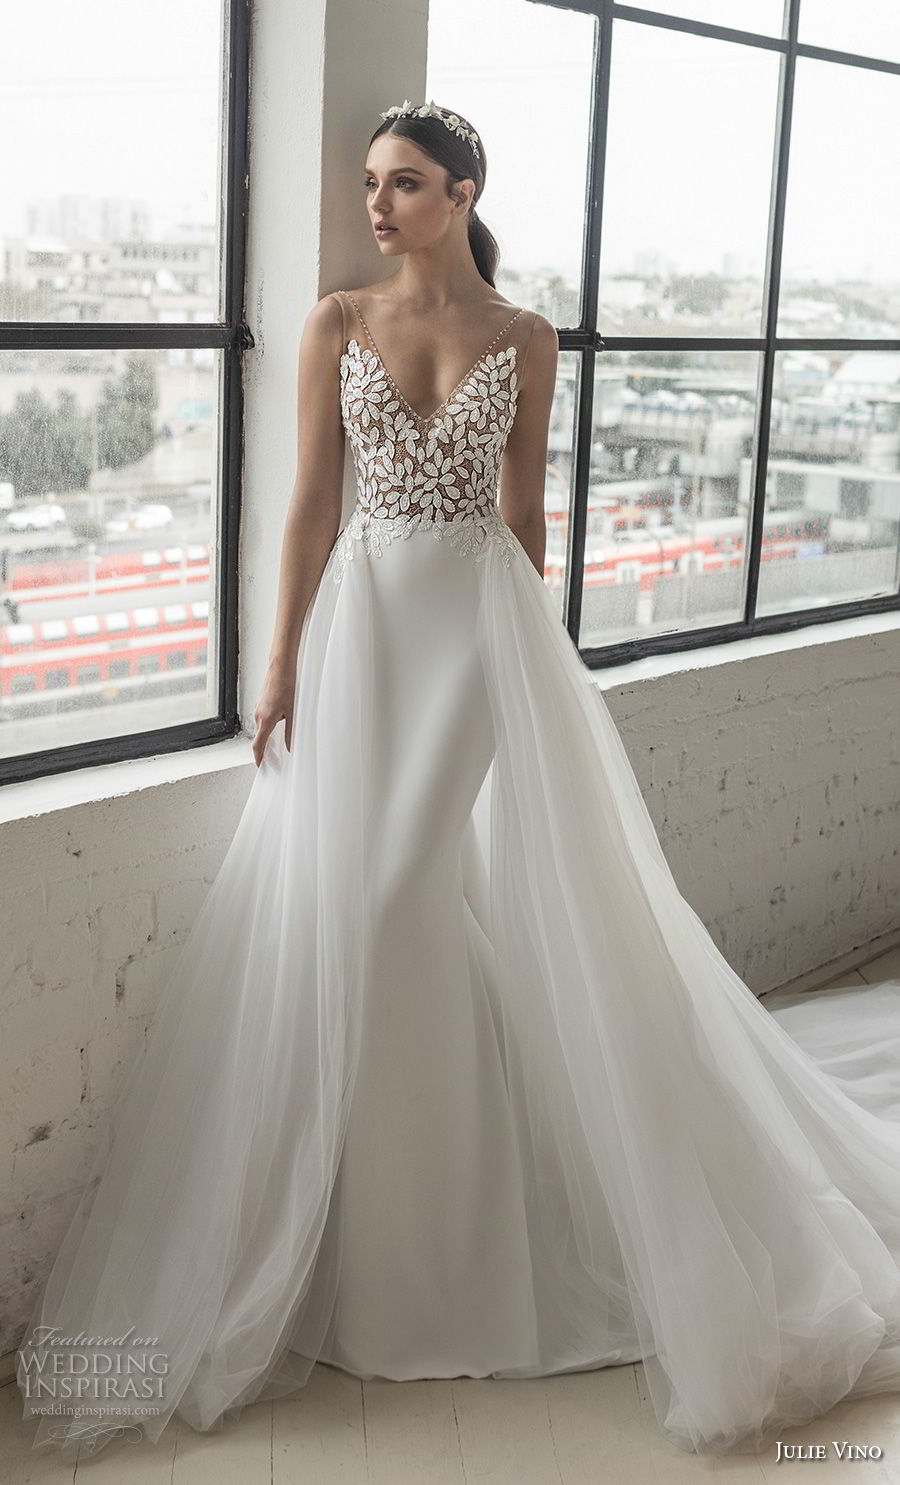 julie vino 2019 romanzo bridal sleeveless v neck heavily embellished bodice romantic elegant fit and flare wedding dress a line overskirt low scoop back chapel train (3) mv